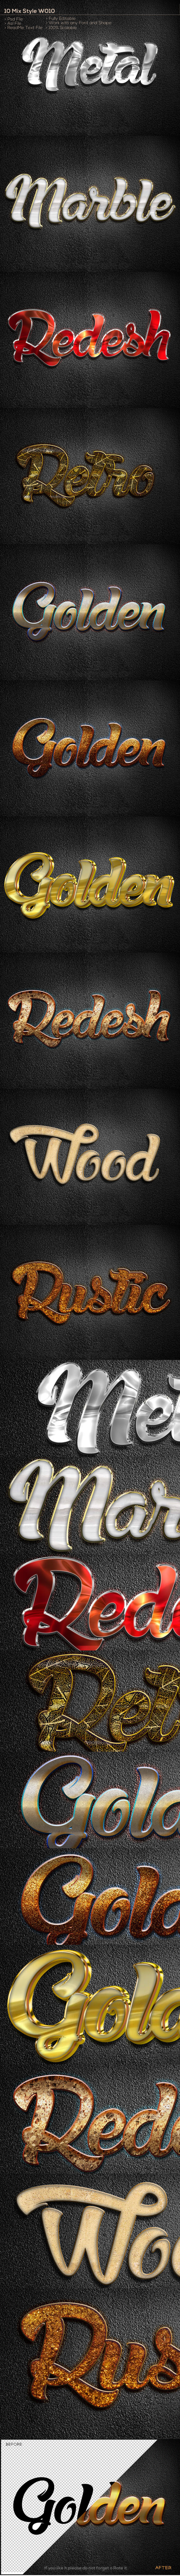 10 Mix Style W010 - Text Effects Styles